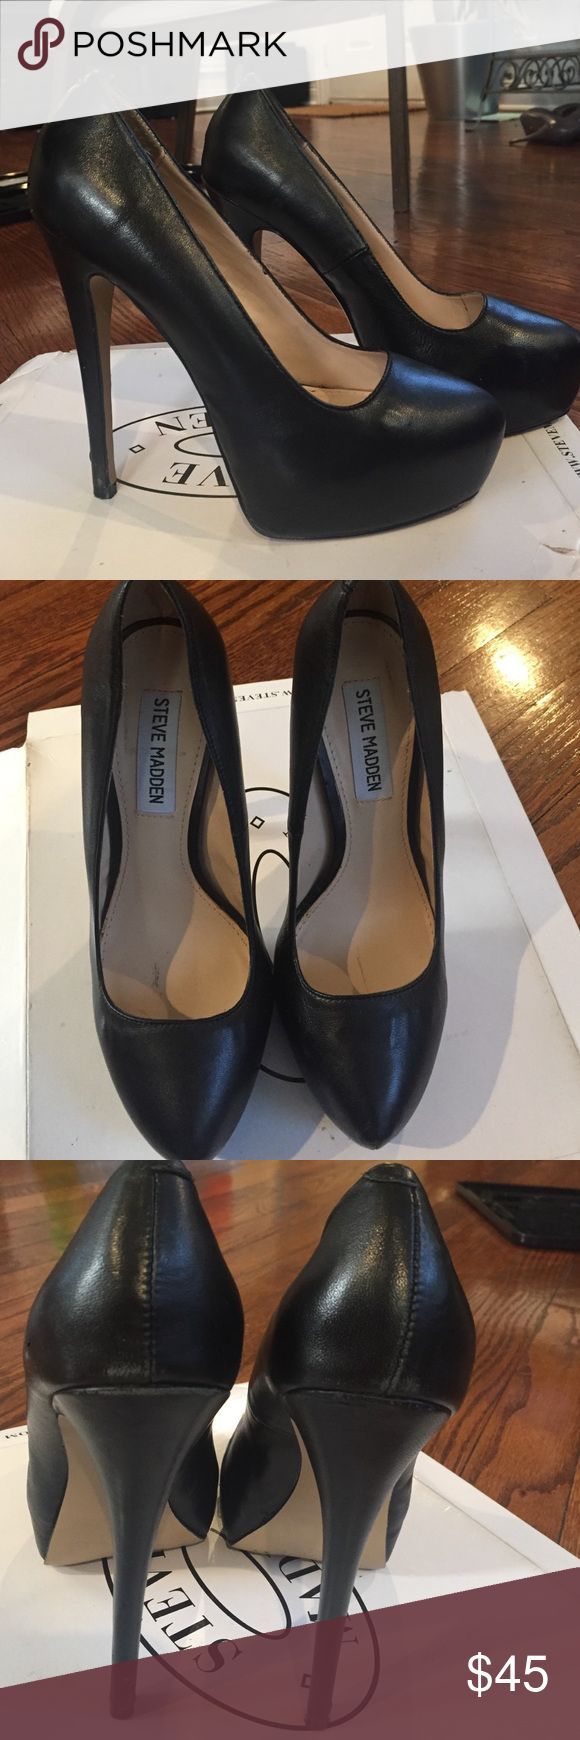 Black Steven Madden Heels Black platform pump. Only used a couple times. Like-new condition. Steve Madden Shoes Heels